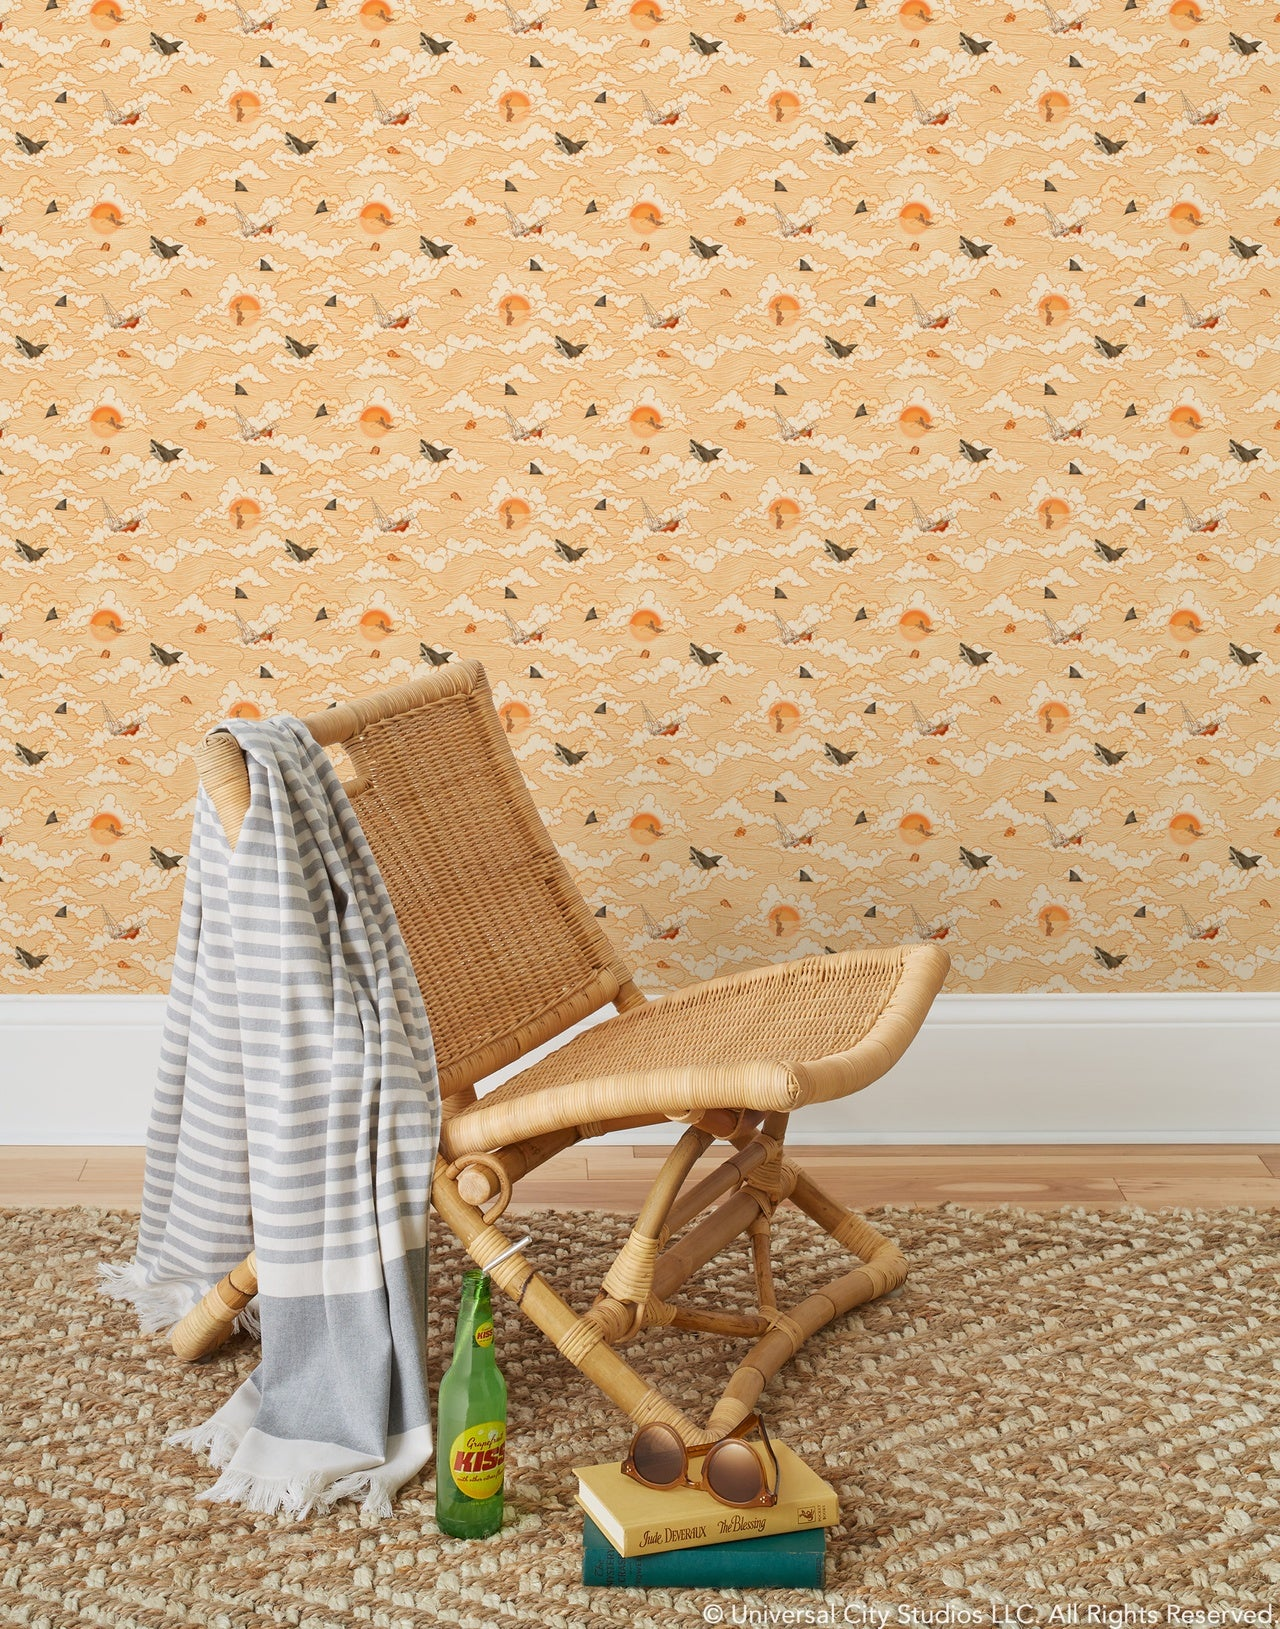 Amity Sunset pattern inspired by the film Jaws and designed by Lisel Jane Ashlock | Universal + Hygge & West wallpaper and shower curtain collection